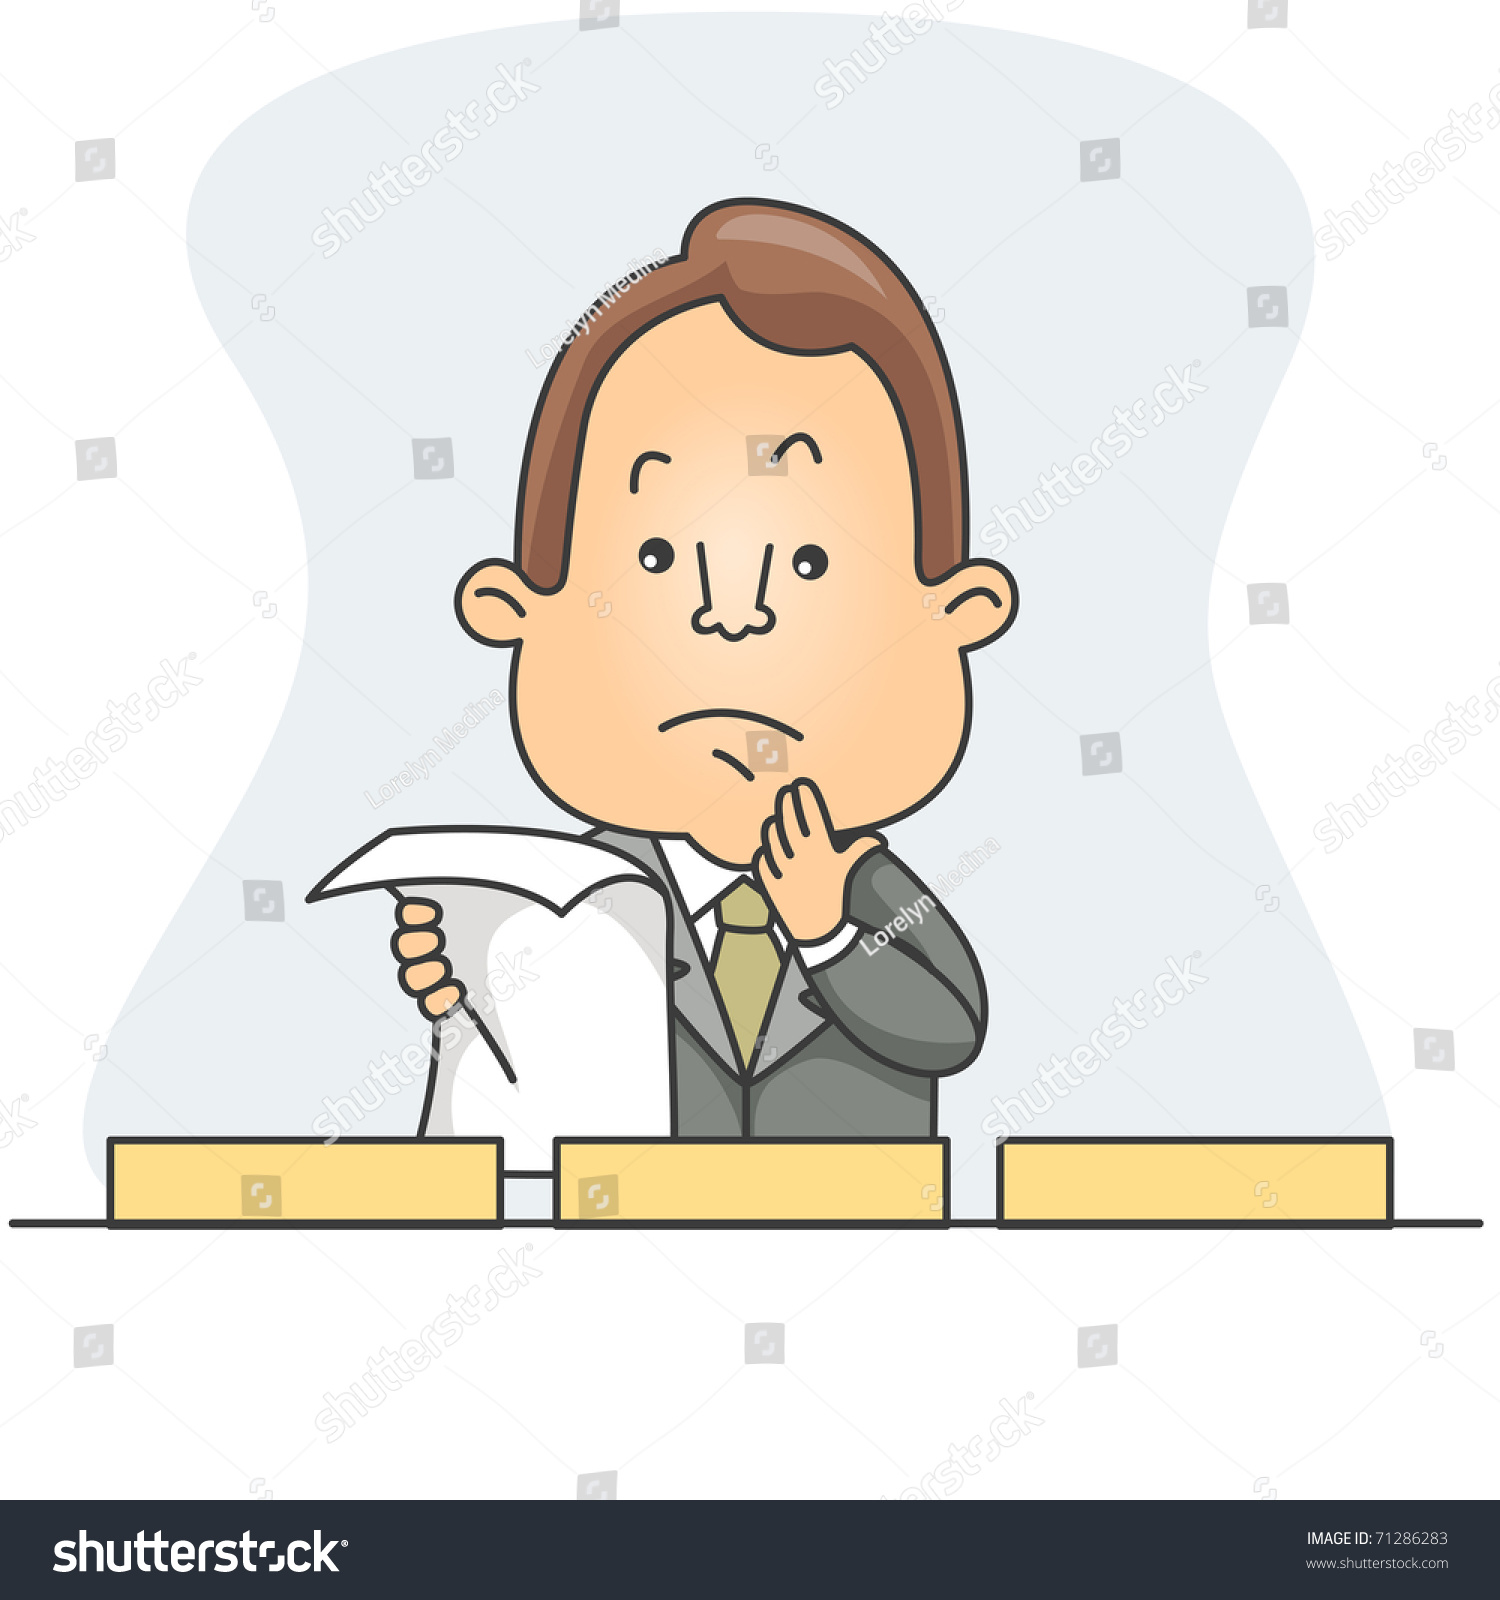 Deciding stock illustrations royalty free gograph - Illustration Of A Man Deciding Which Box To Store The Document